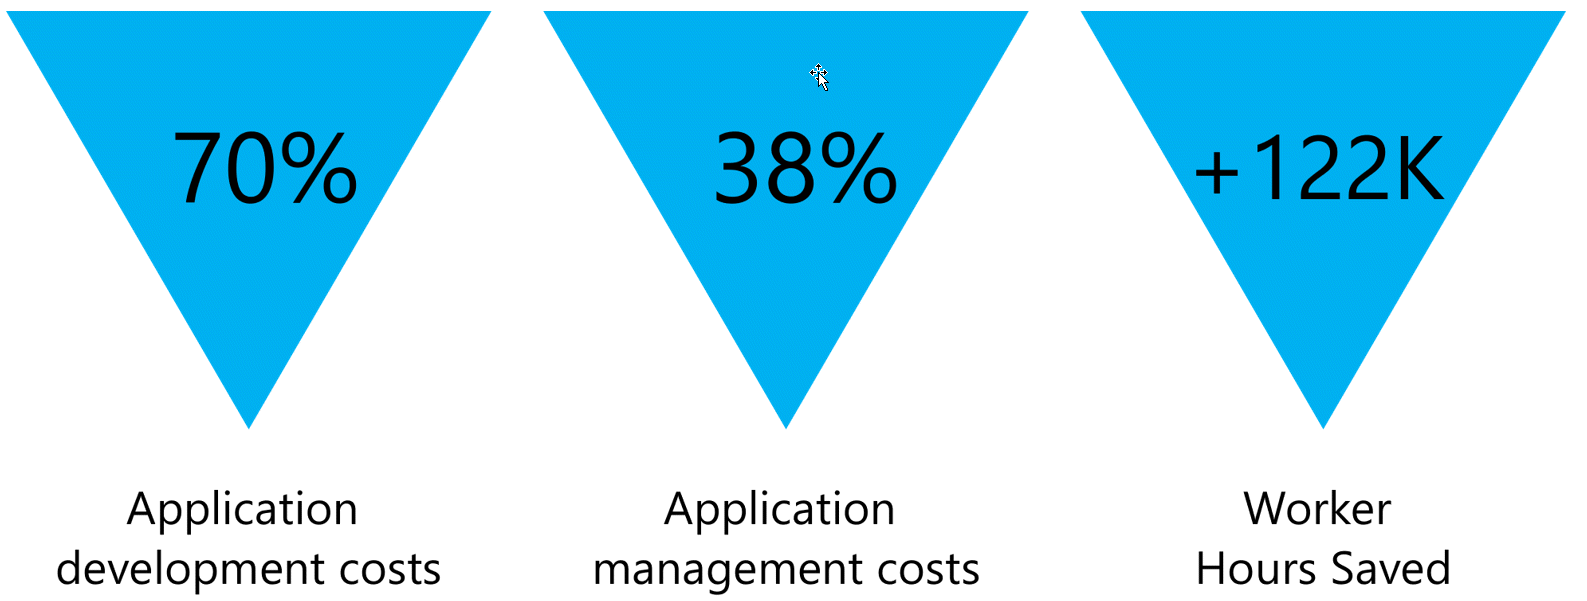 Image showing 70% for Application development costs, 38% for Application management costs, and +122K for Worker Hours Saved.